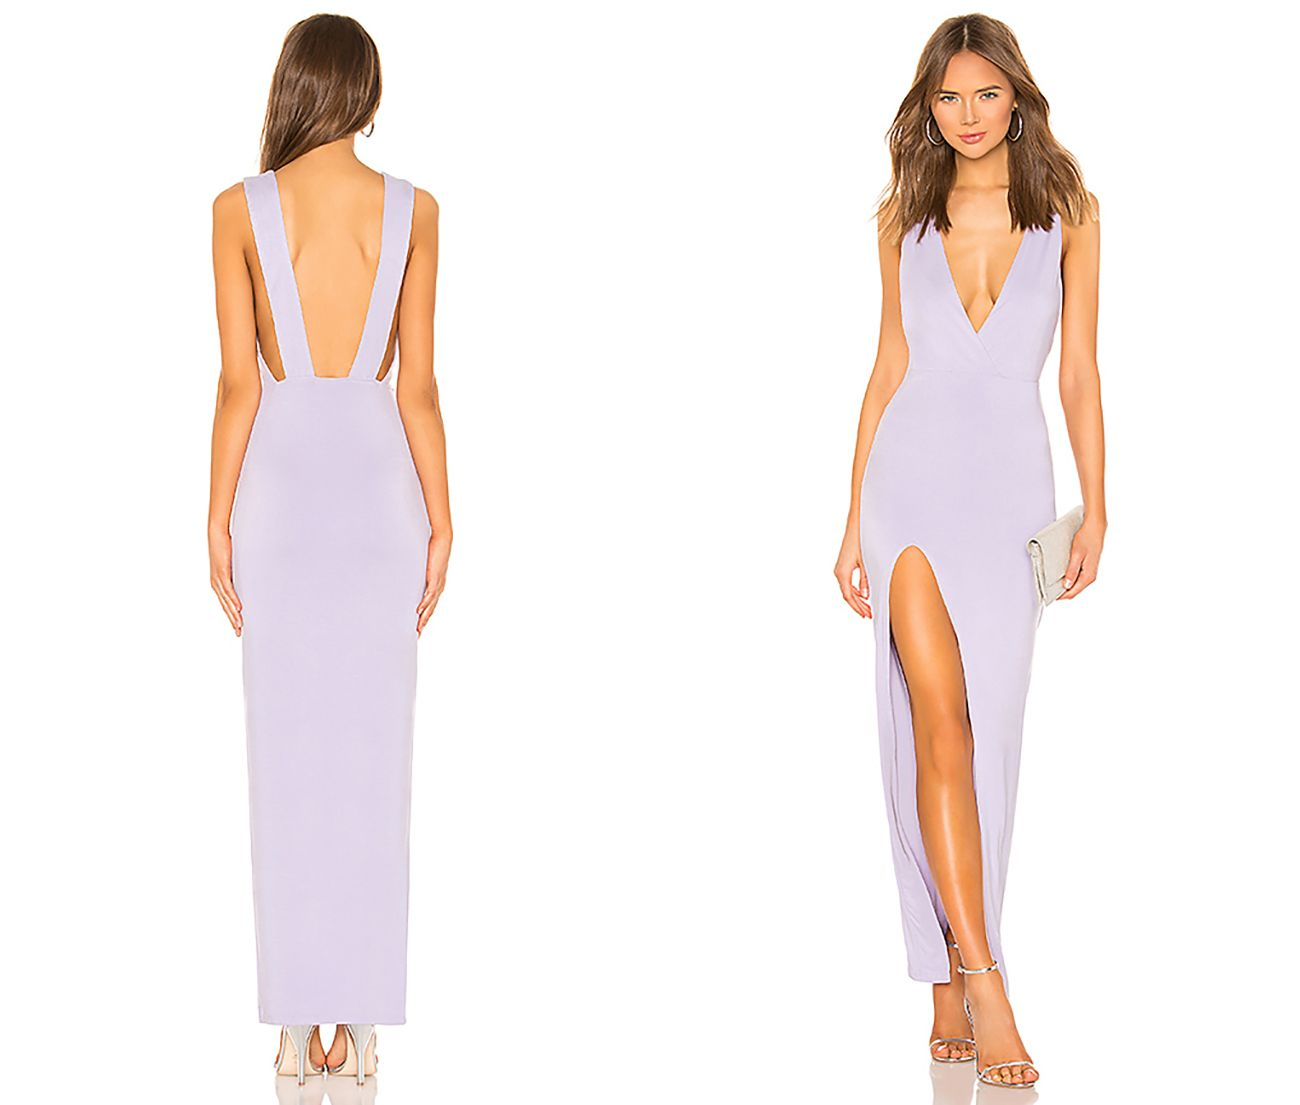 e2f15e2eccd What To Wear to a Spring Wedding Glam Cocktail Party